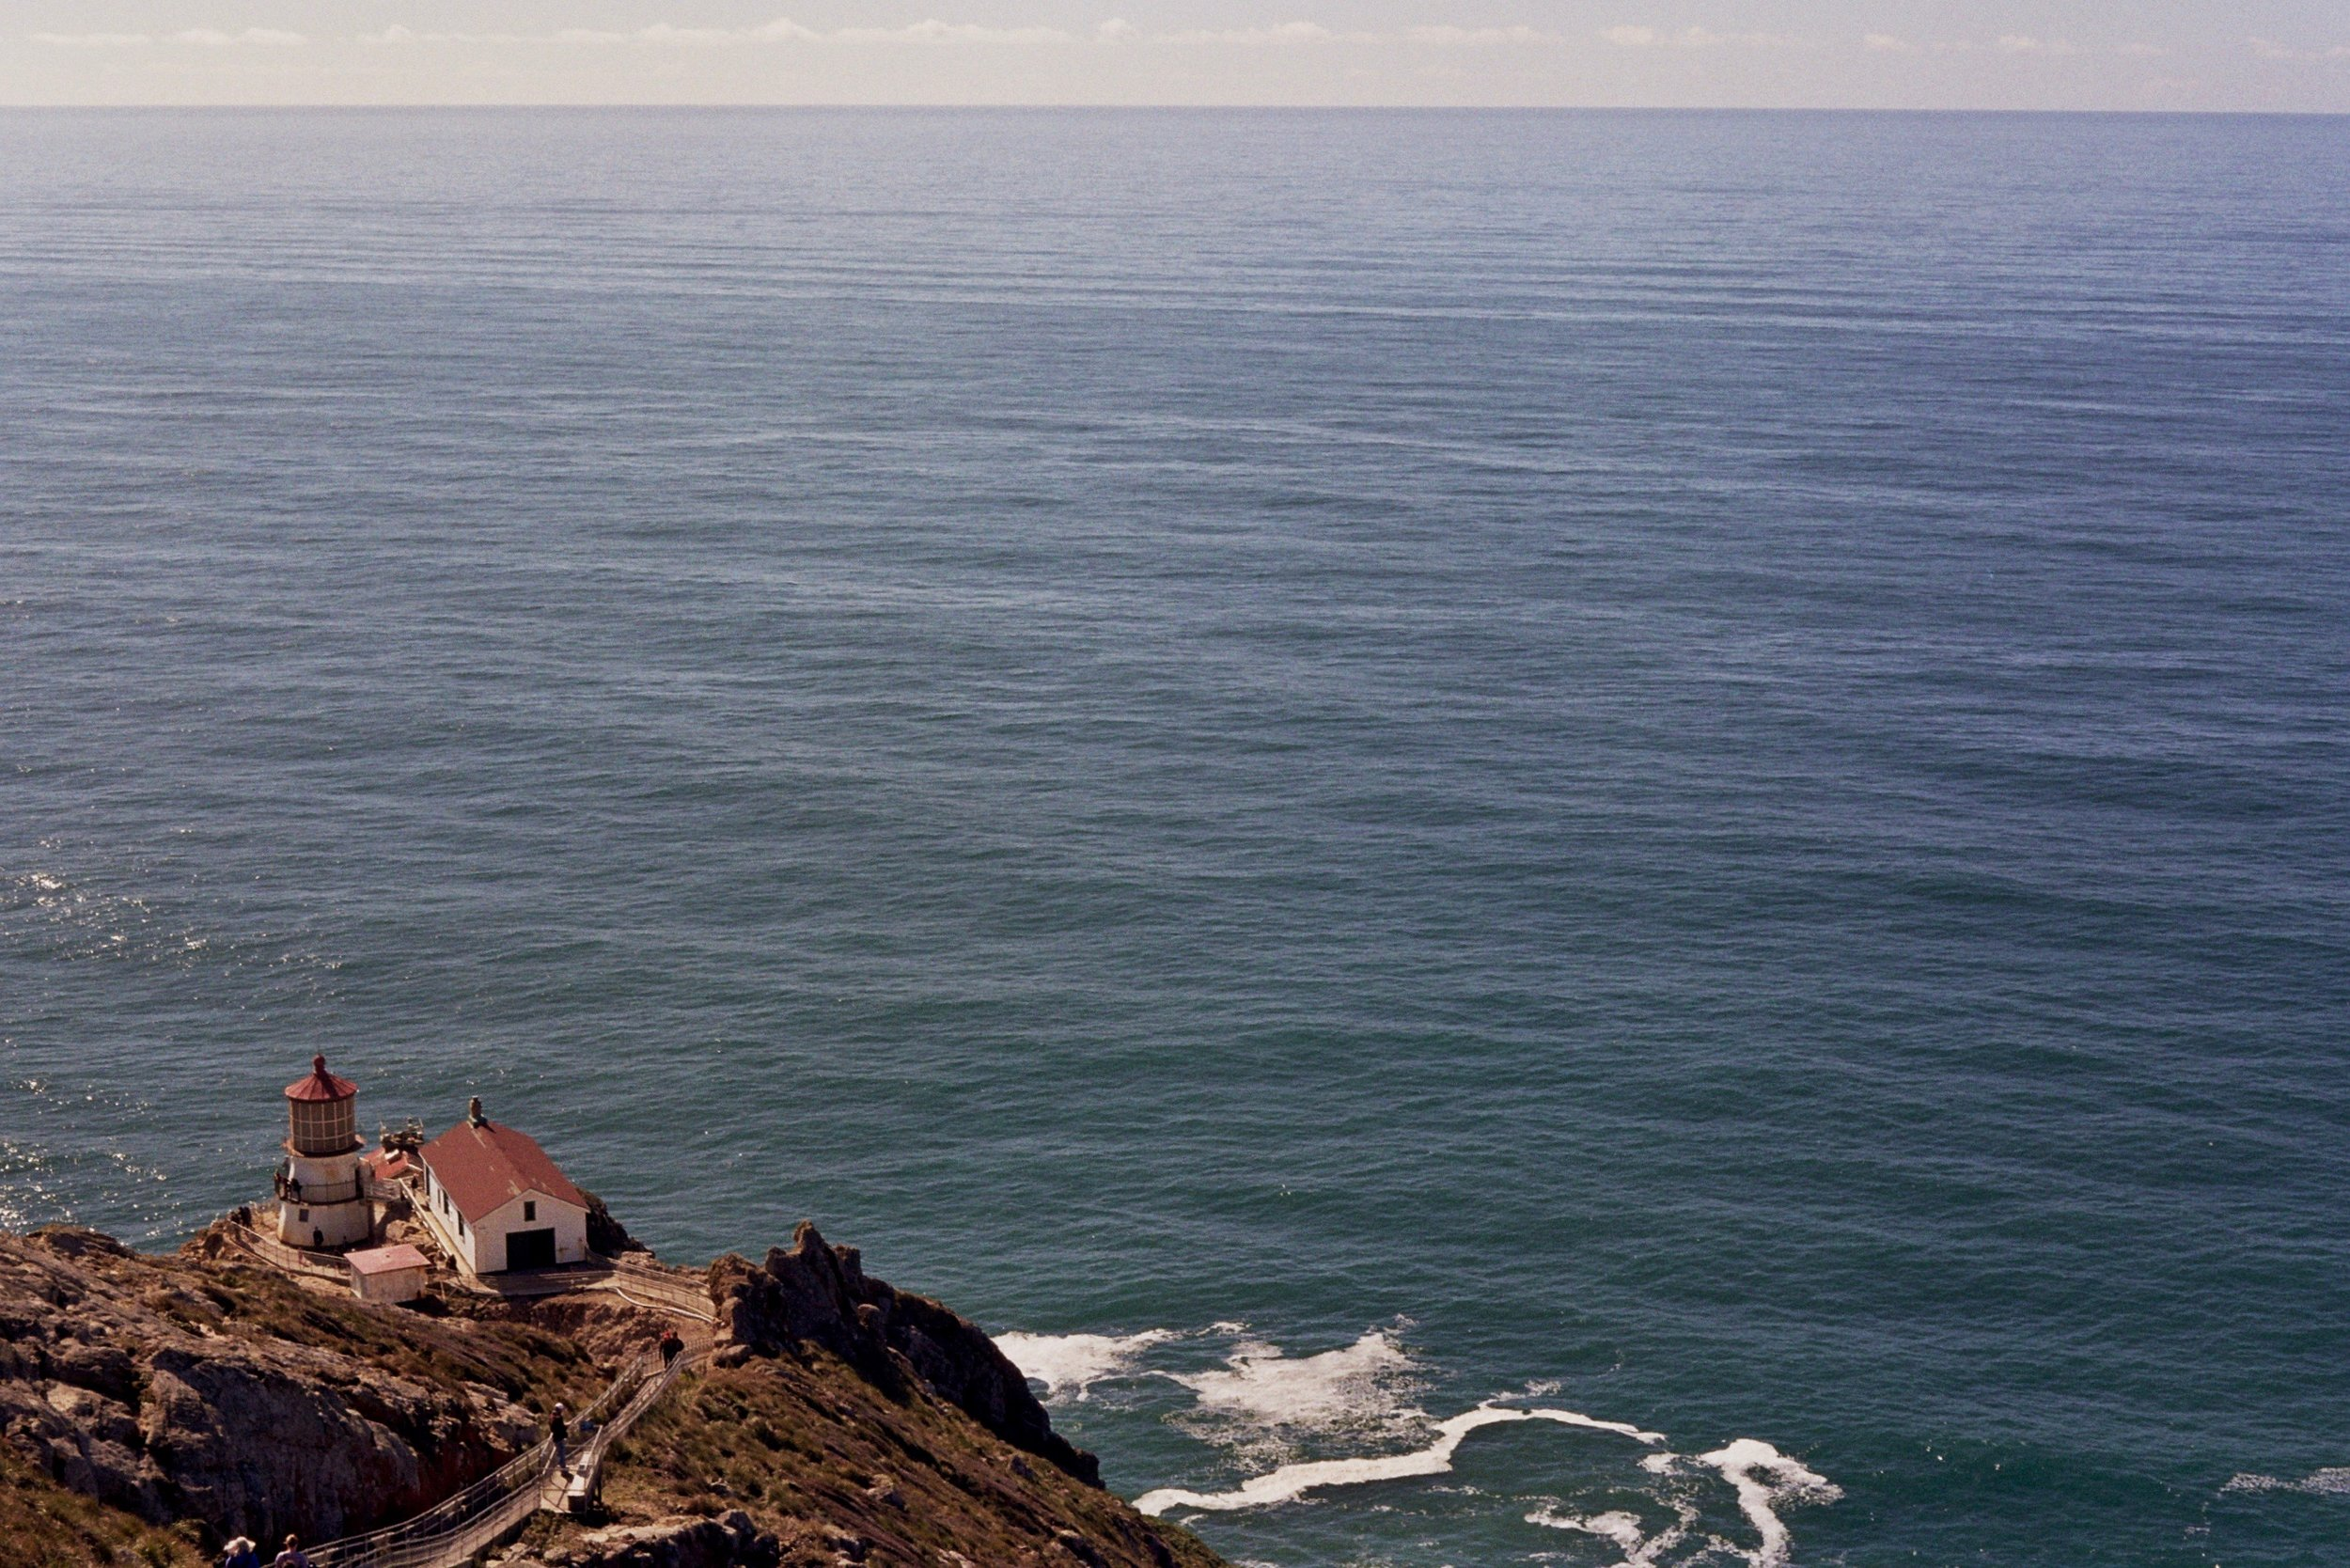 Land's End: The Pt Reyes lighthouse